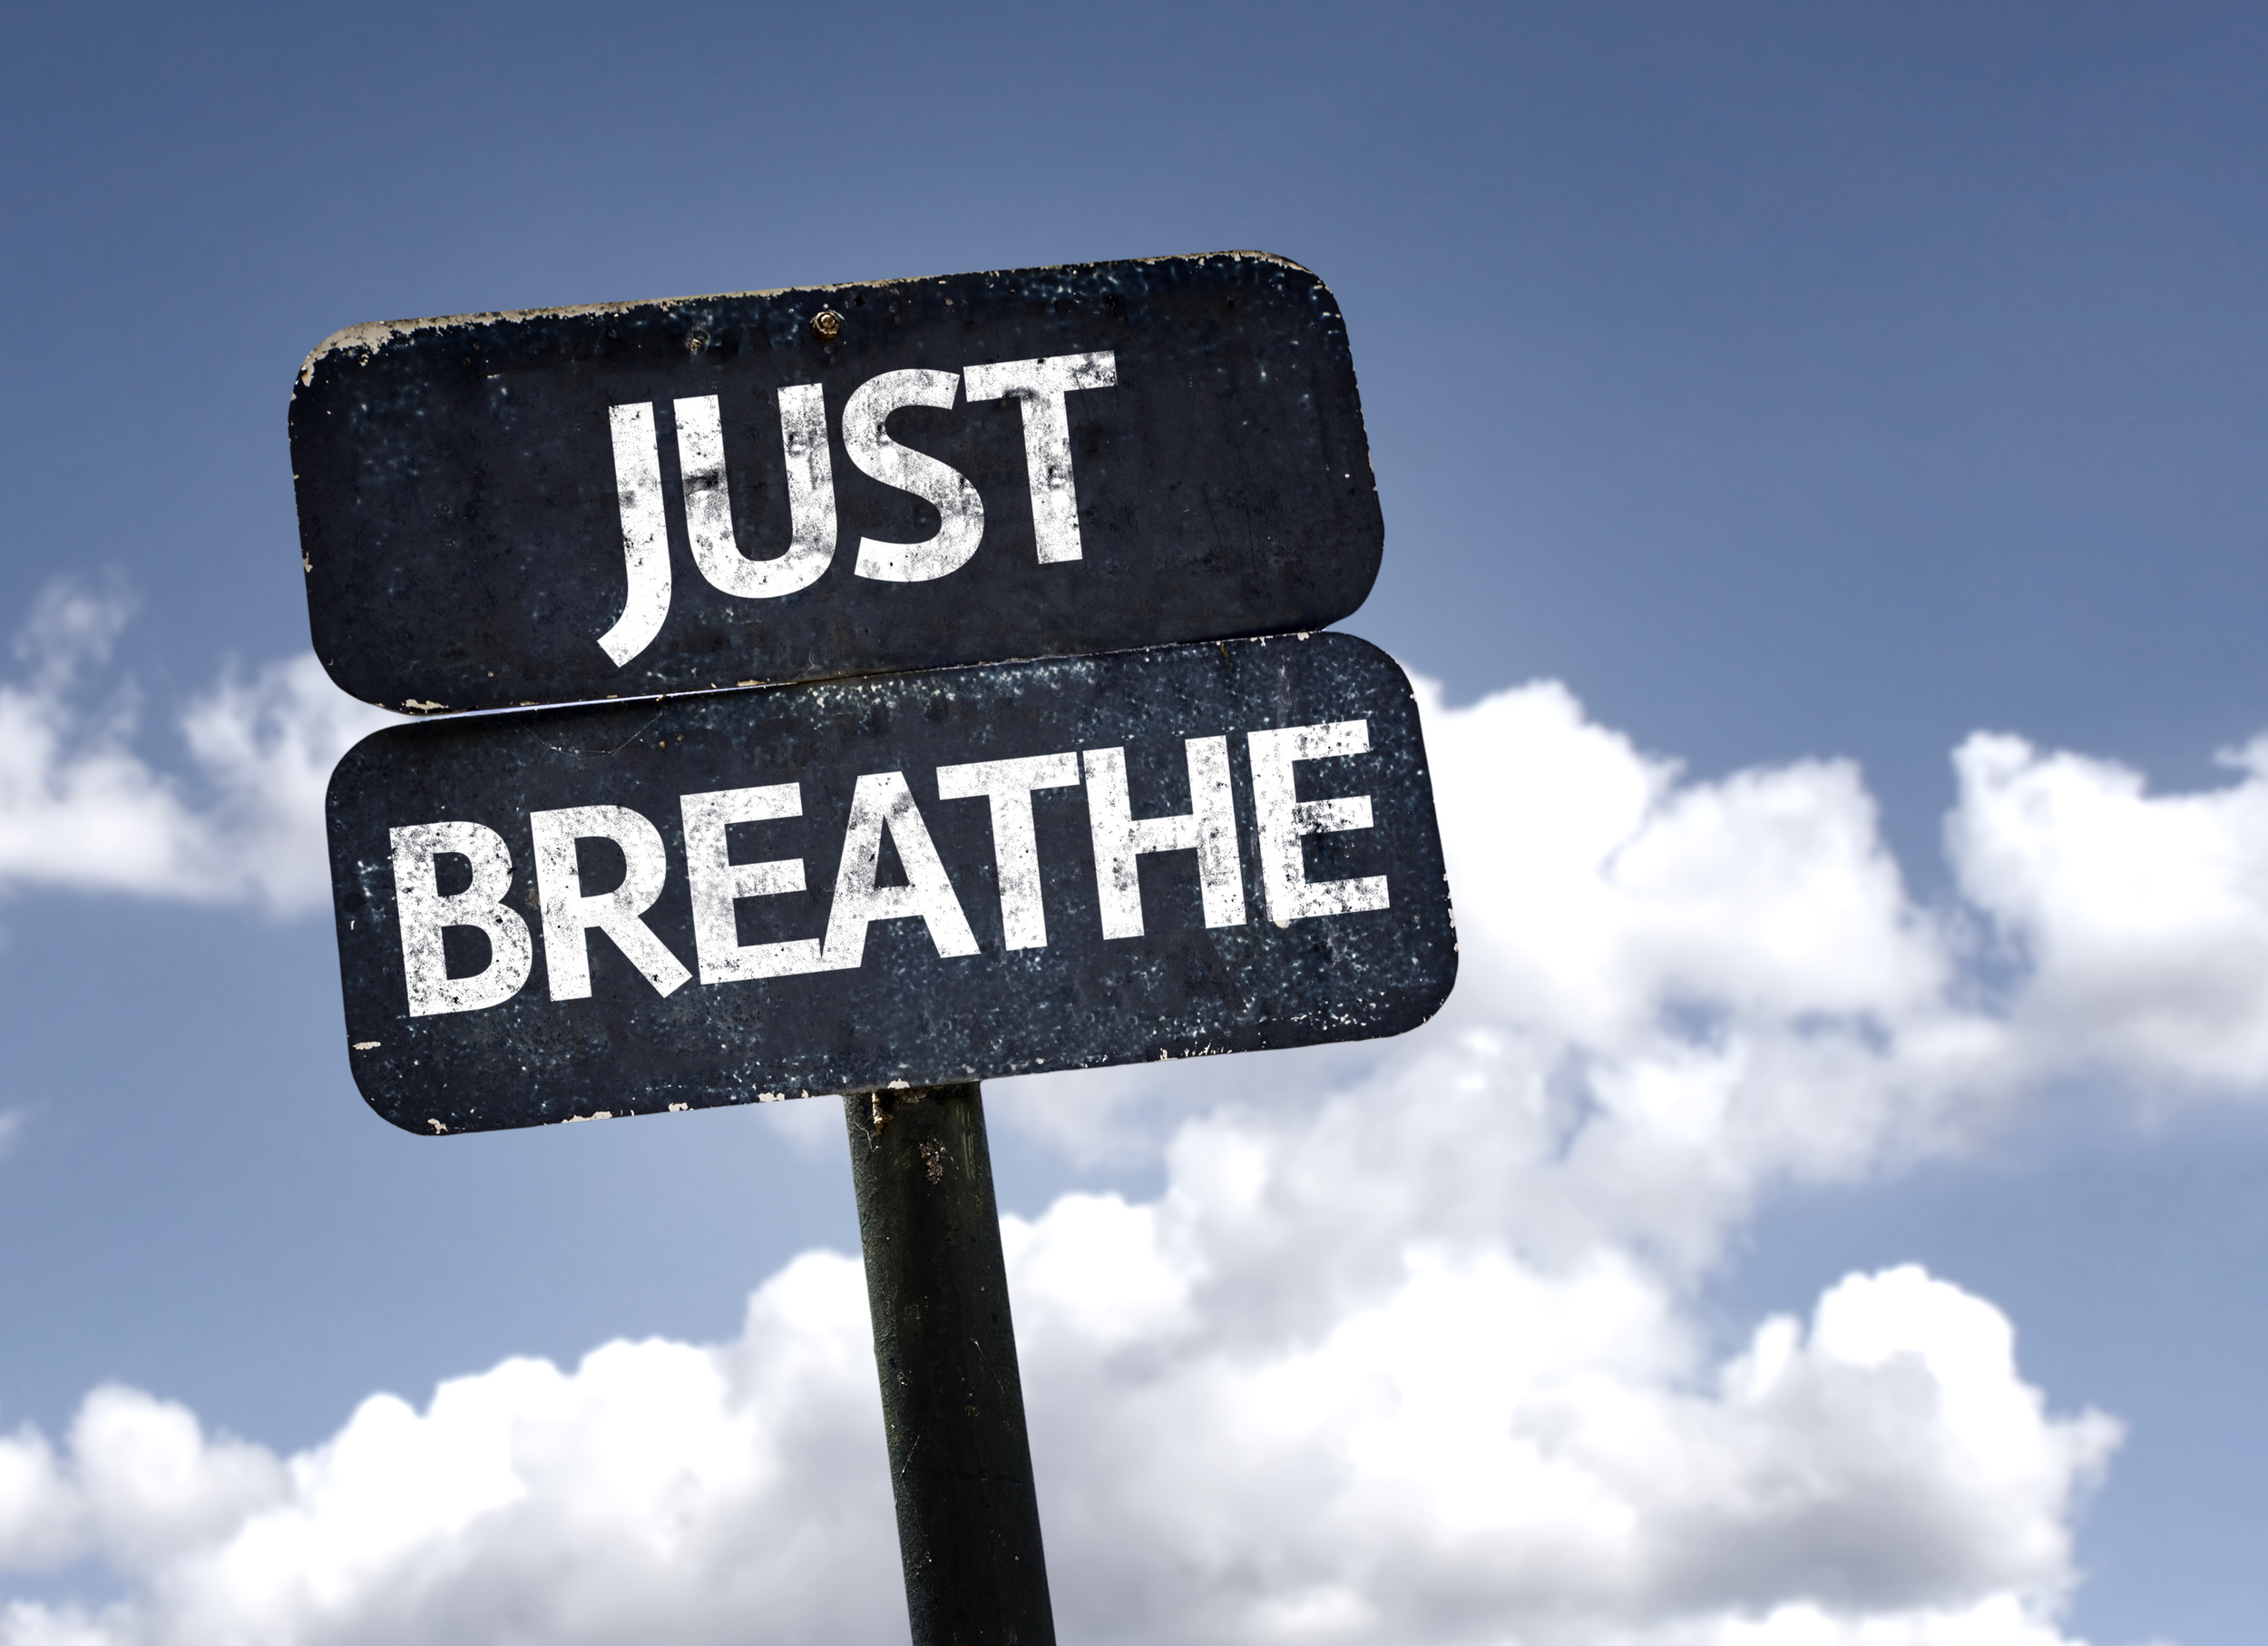 Give yourself space to prepare. Breathe and collect yourself.